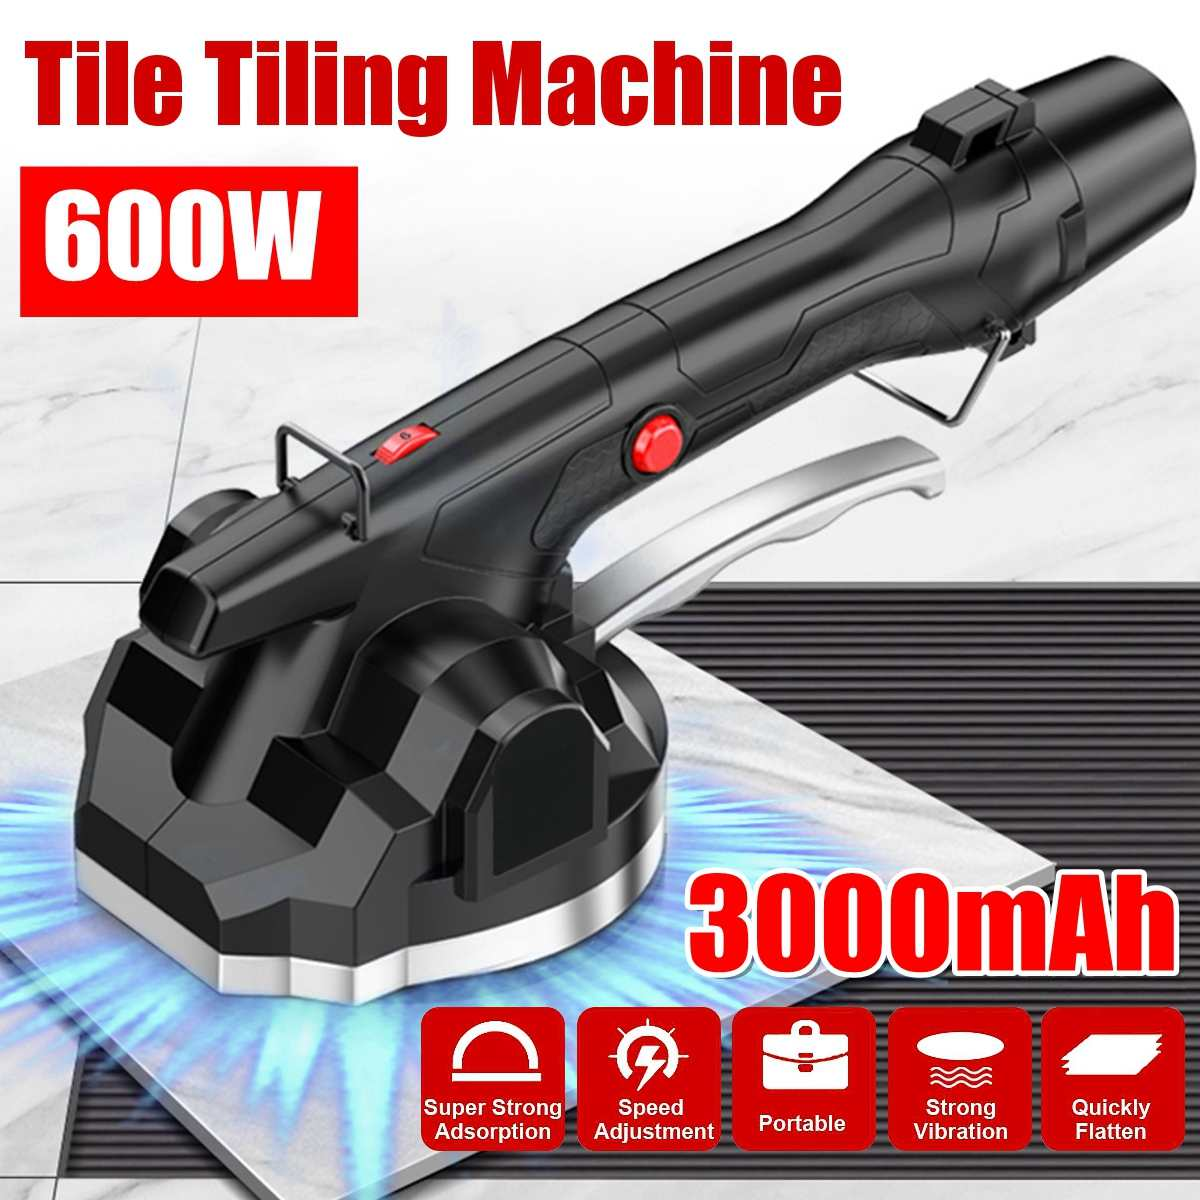 600W Vibrator For Tiles 100x100cm Tiling Plastering Machine Laying Tiles With 1x300mAh Battery Automatic Floor Vibrator Leveling